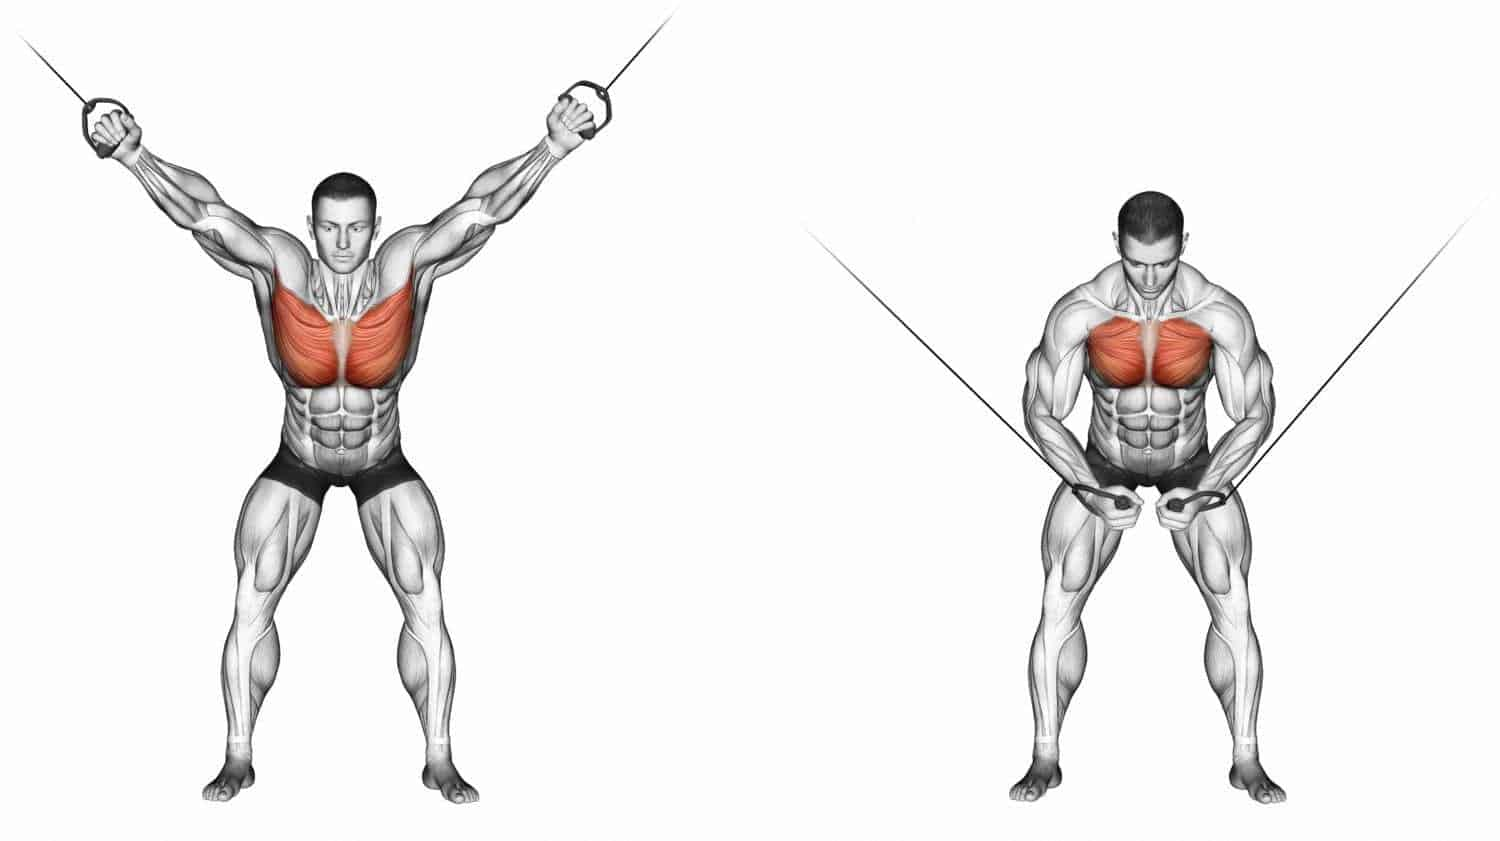 chest fly pulses done with a cable machine at the gym